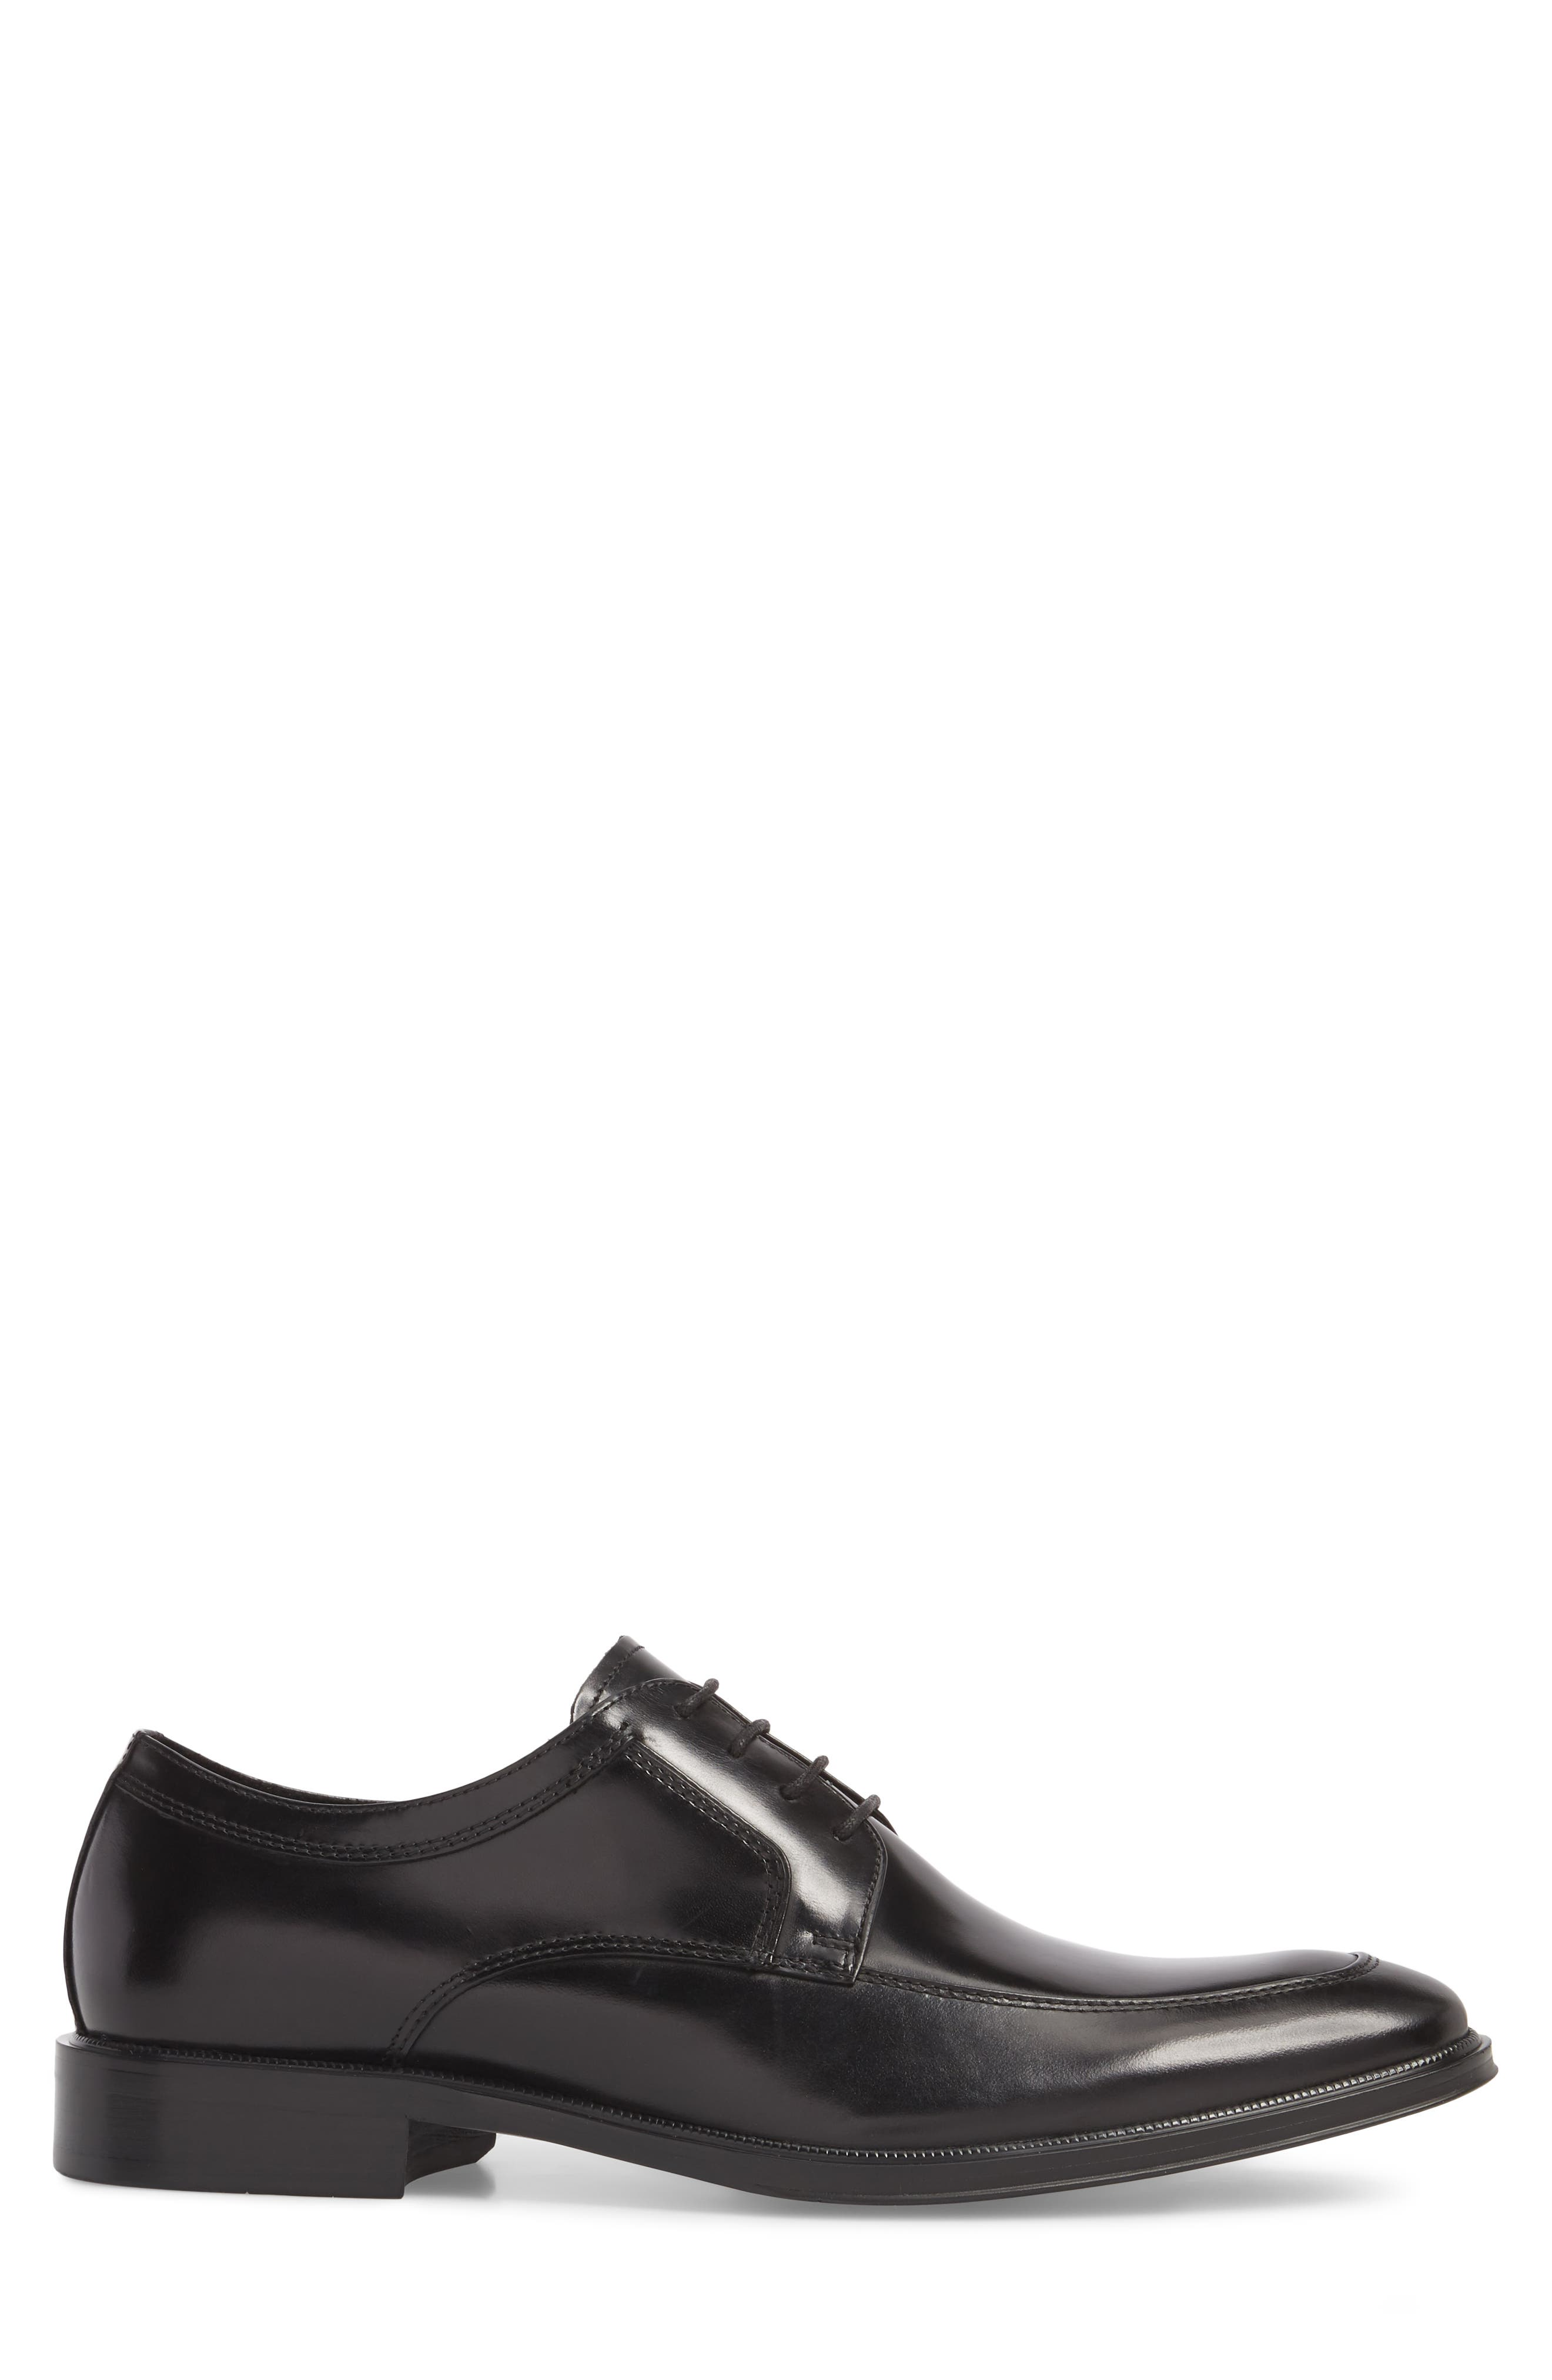 Tully Apron Toe Derby,                             Alternate thumbnail 3, color,                             BLACK LEATHER